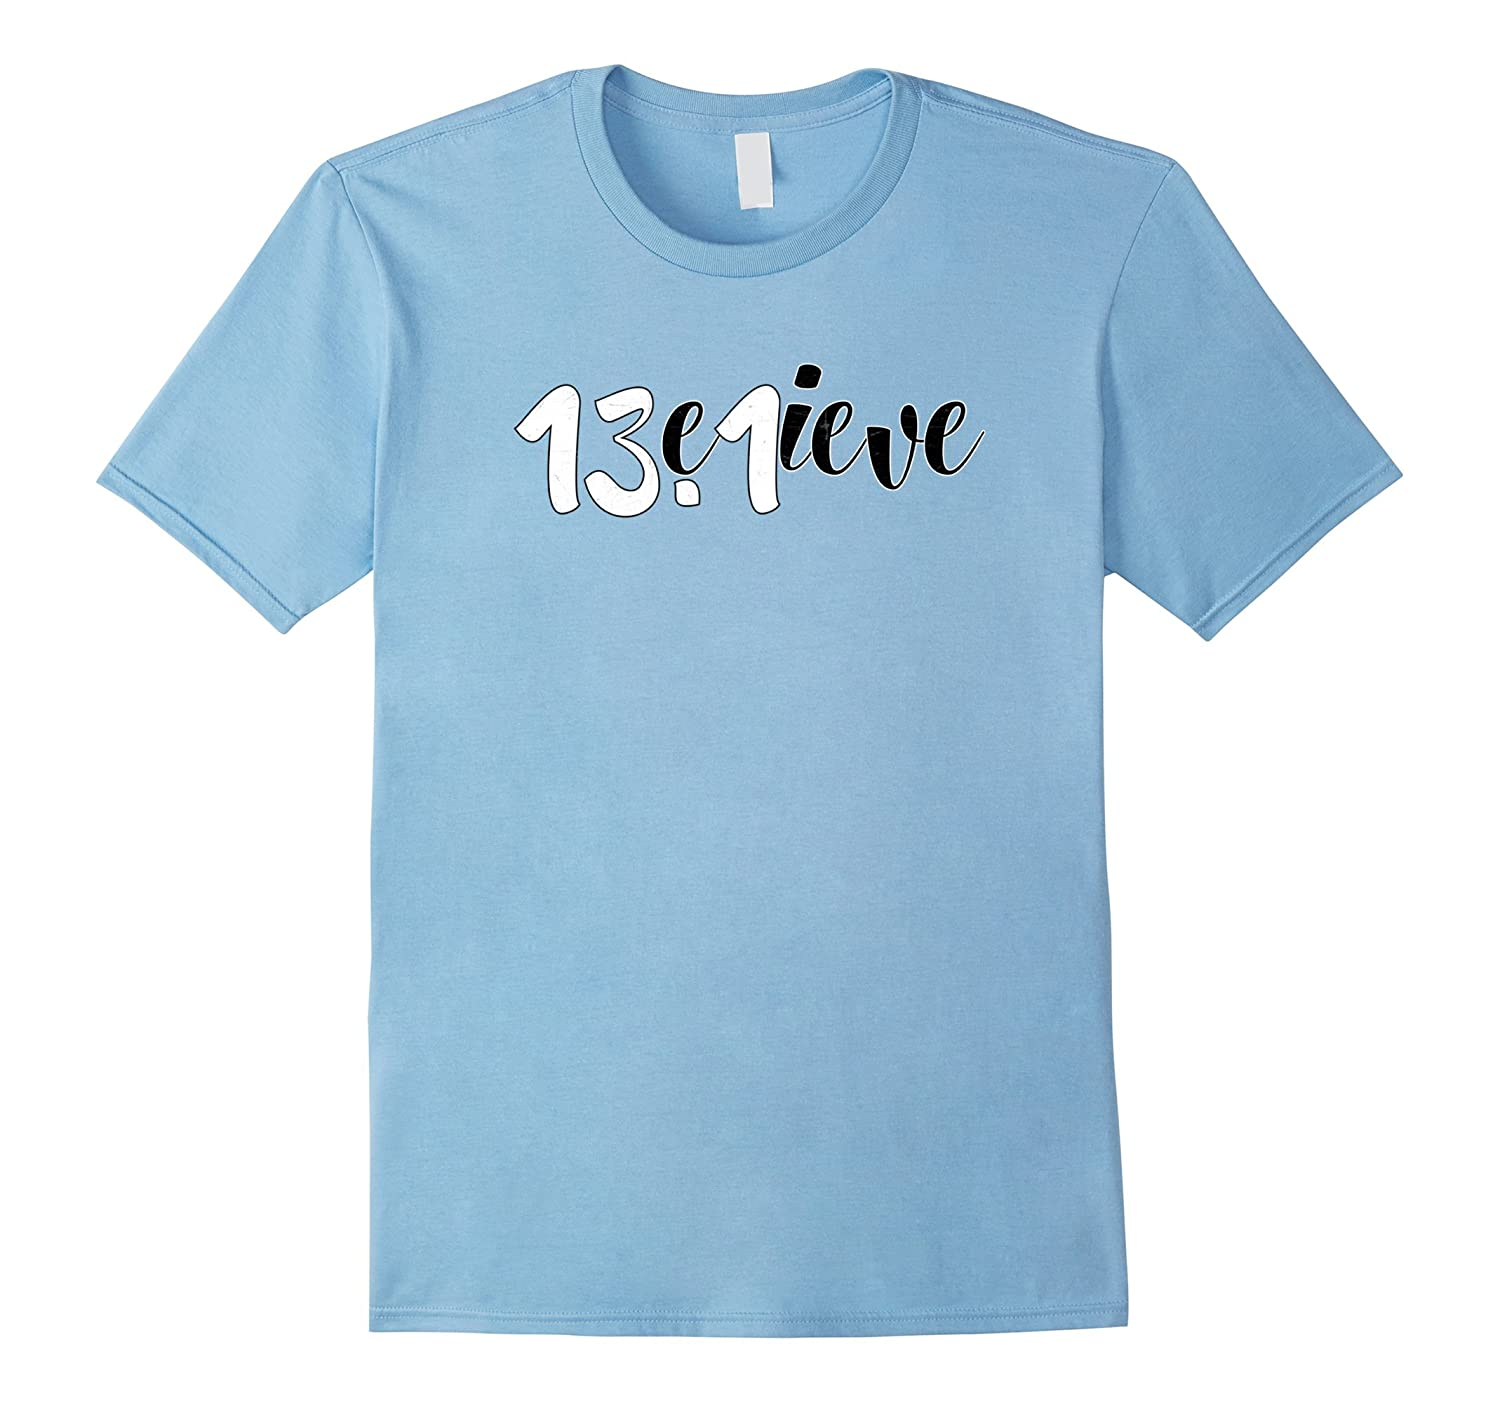 Believe 131 Marathon Running Humor Slogan Saying Gift Shirt-TJ